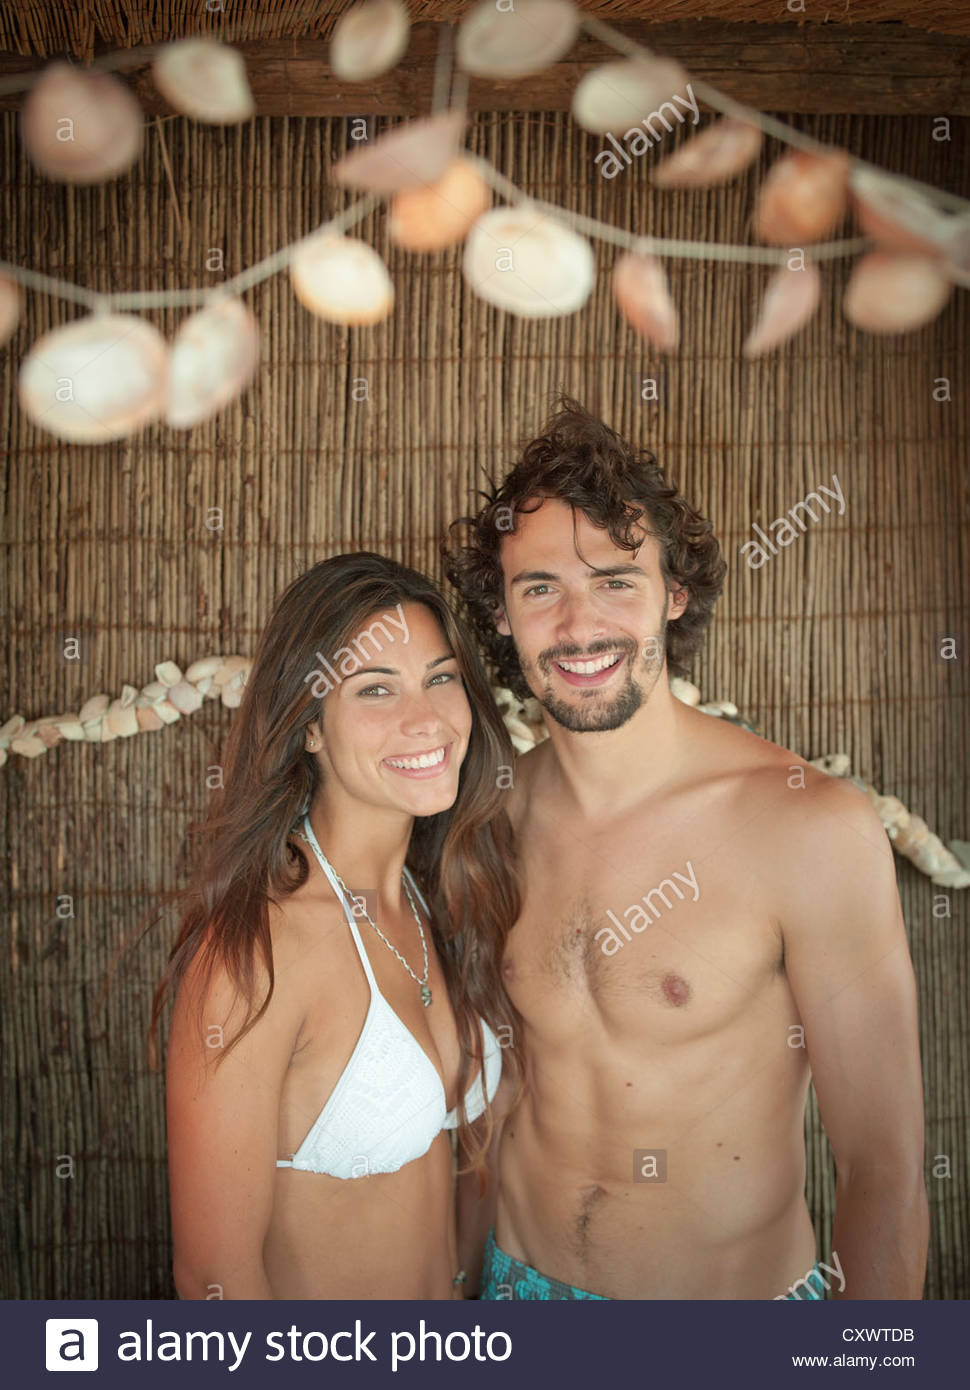 Smiling couple standing in tropical hut - Stock Image